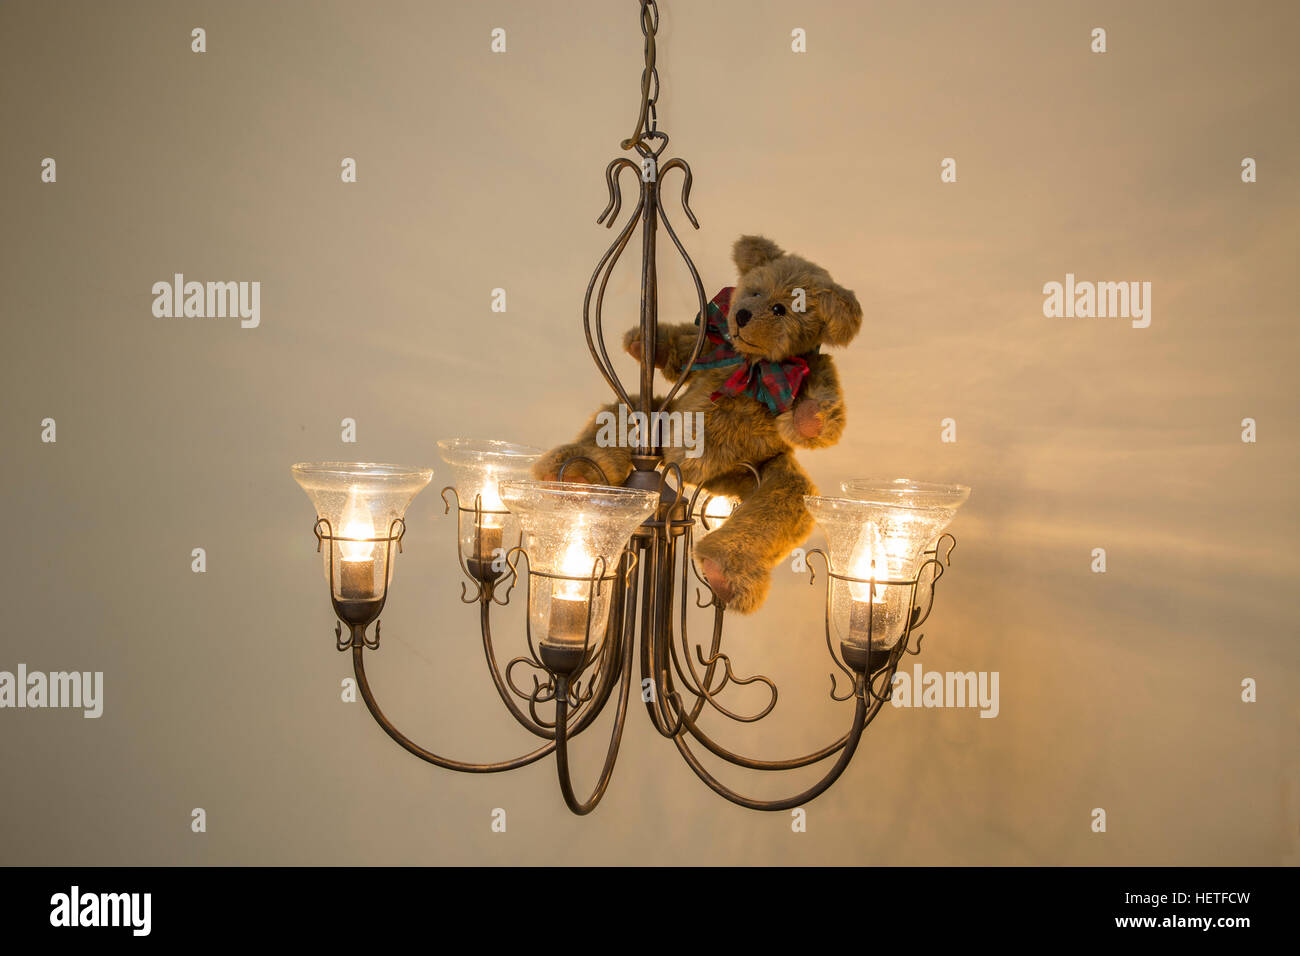 Teddy bear wearing a christmas bow swinging from a chandelier stock teddy bear wearing a christmas bow swinging from a chandelier arubaitofo Choice Image